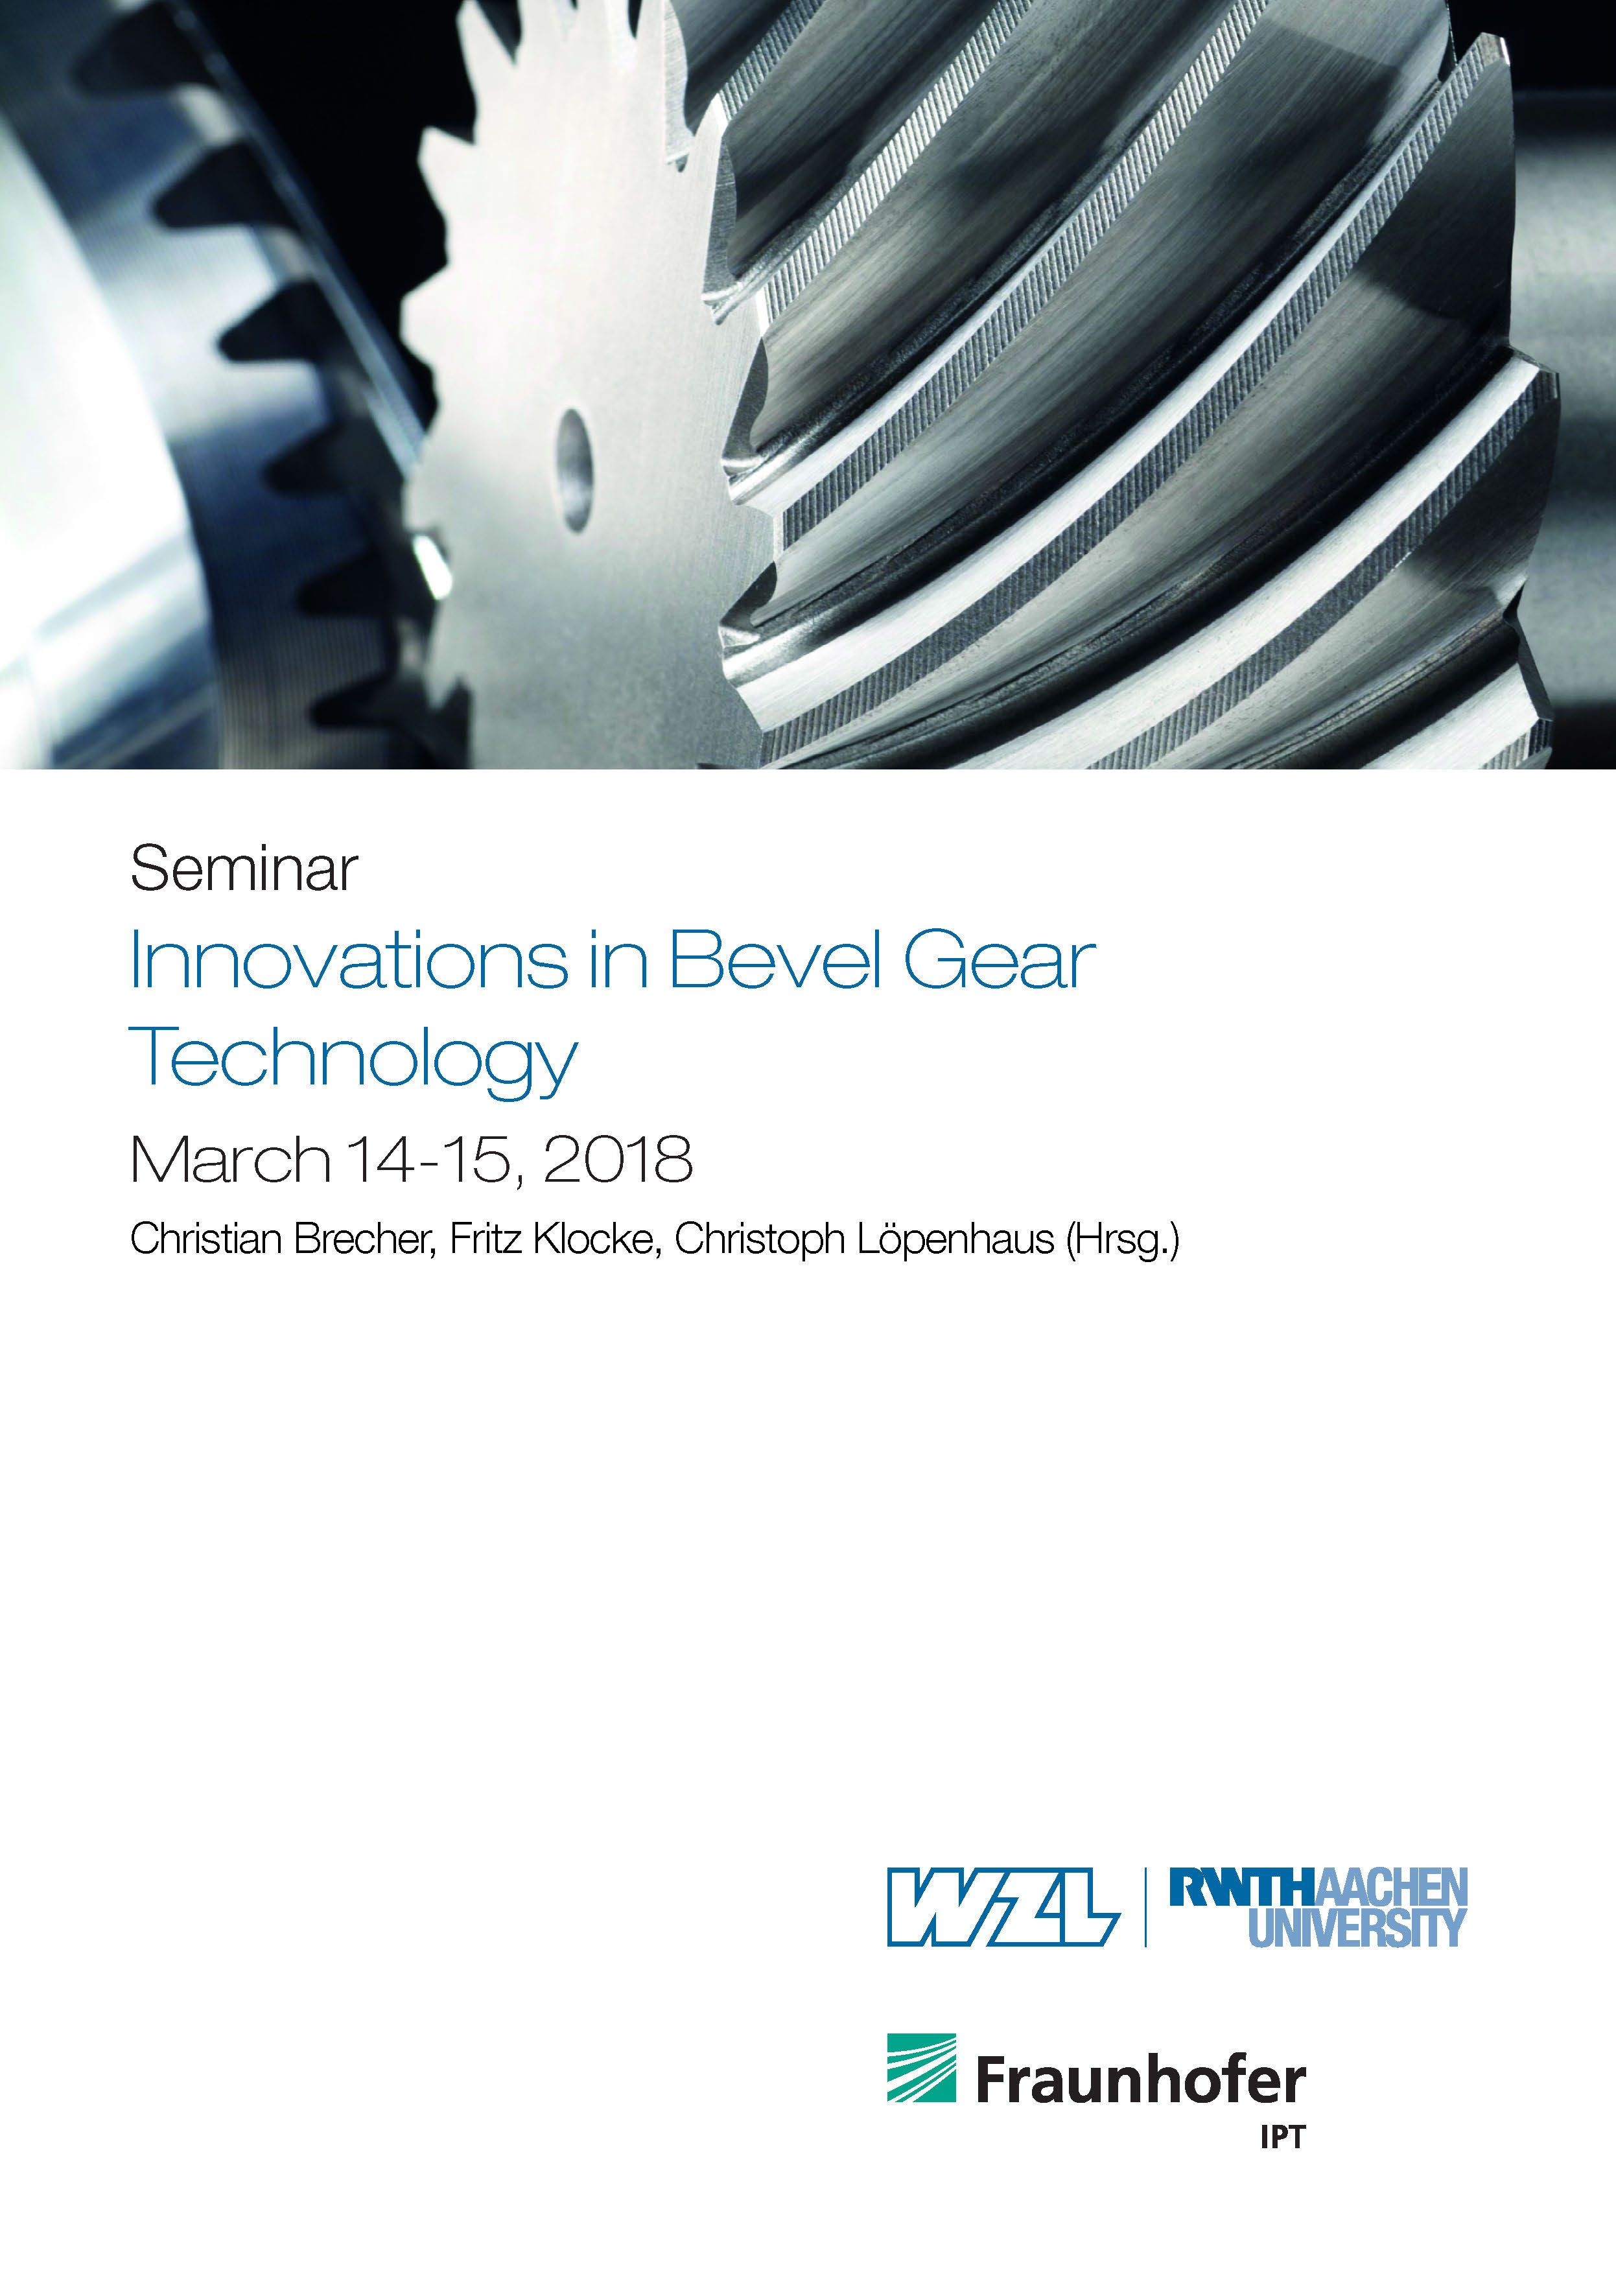 Innovations in Bevel Gear Technology